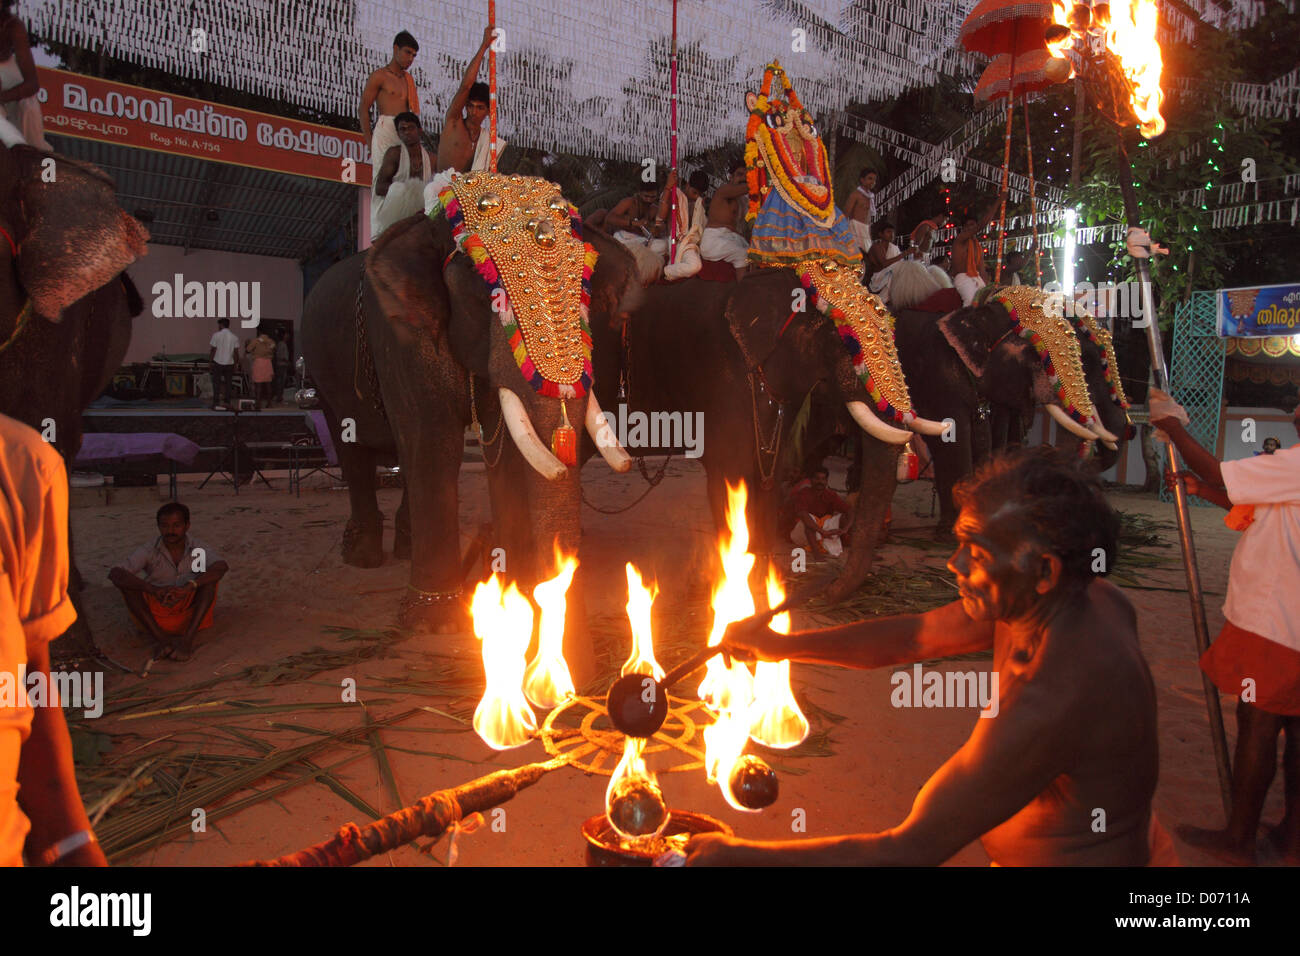 Formation of gold-caparisoned elephants at the Thrissur Pooram. Poorams are Hindu Temple-centered festivals popular - Stock Image